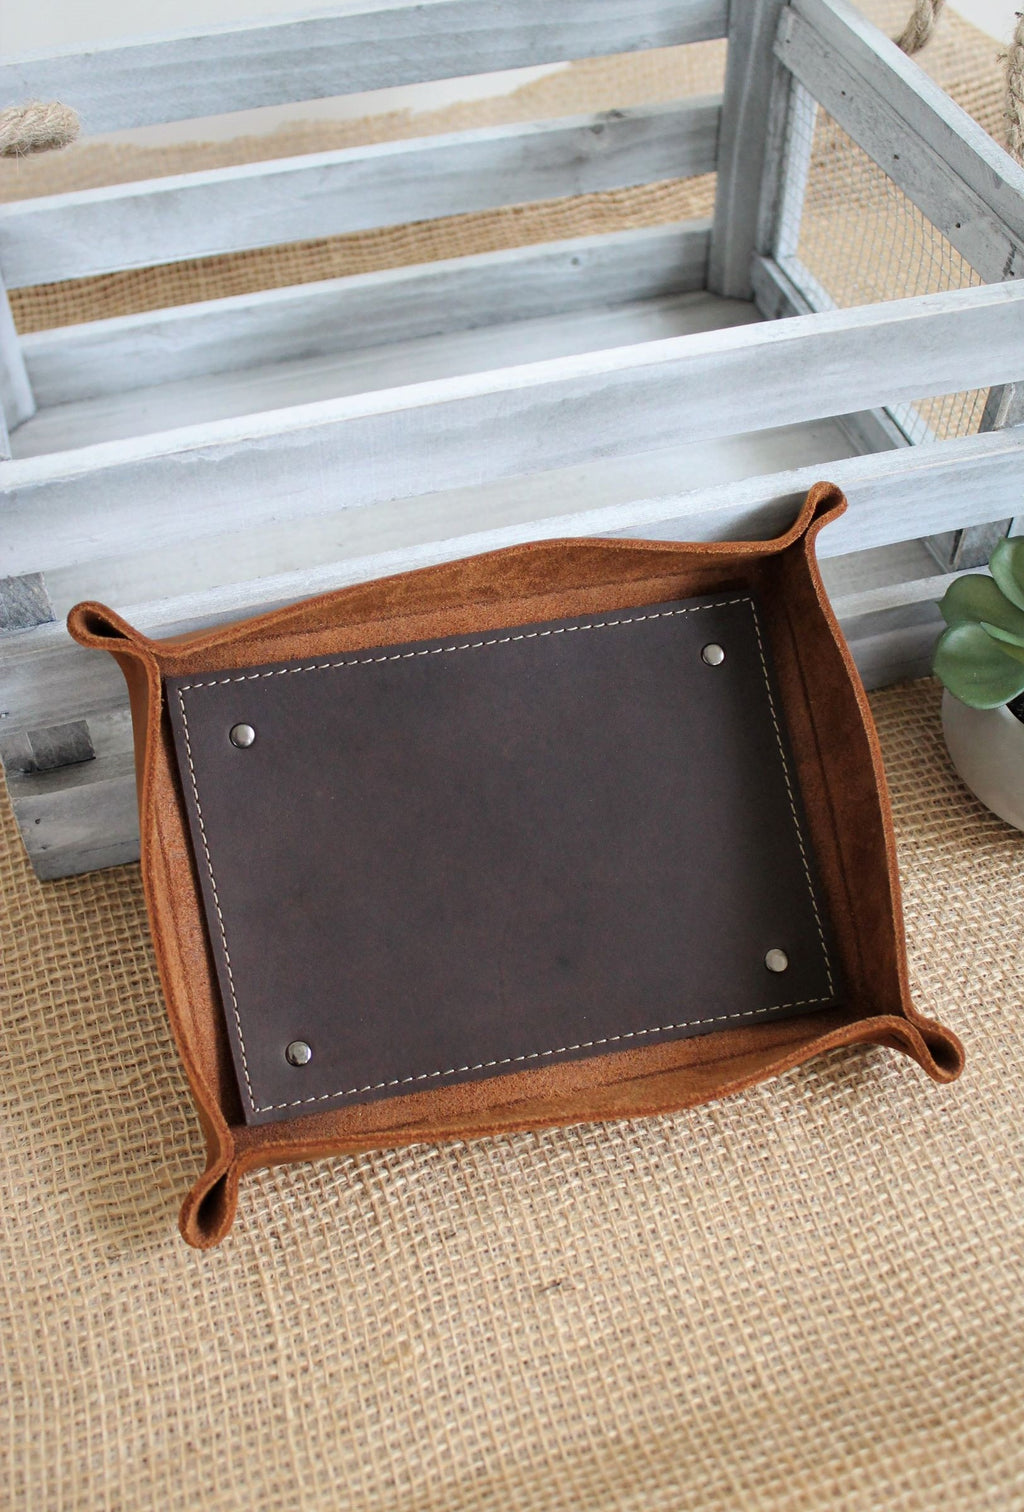 Leather store: Monogrammed large leather valet tray